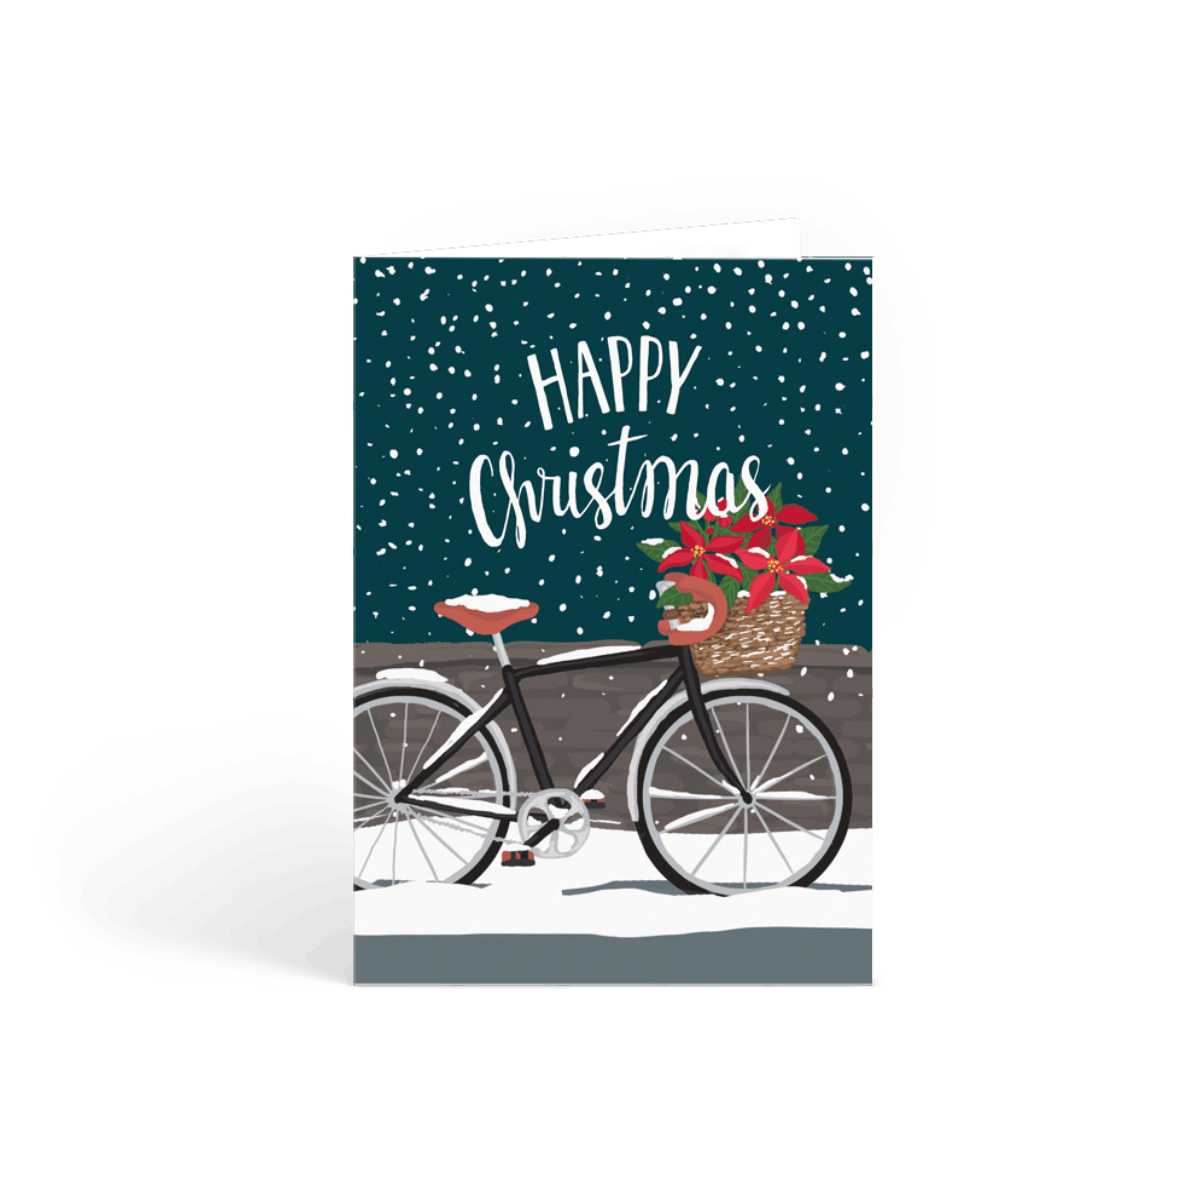 Https%3a%2f%2fwww.papier.com%2fproduct image%2f3569%2f2%2fchristmas bicycle 953 front 1570704888.png?ixlib=rb 1.1